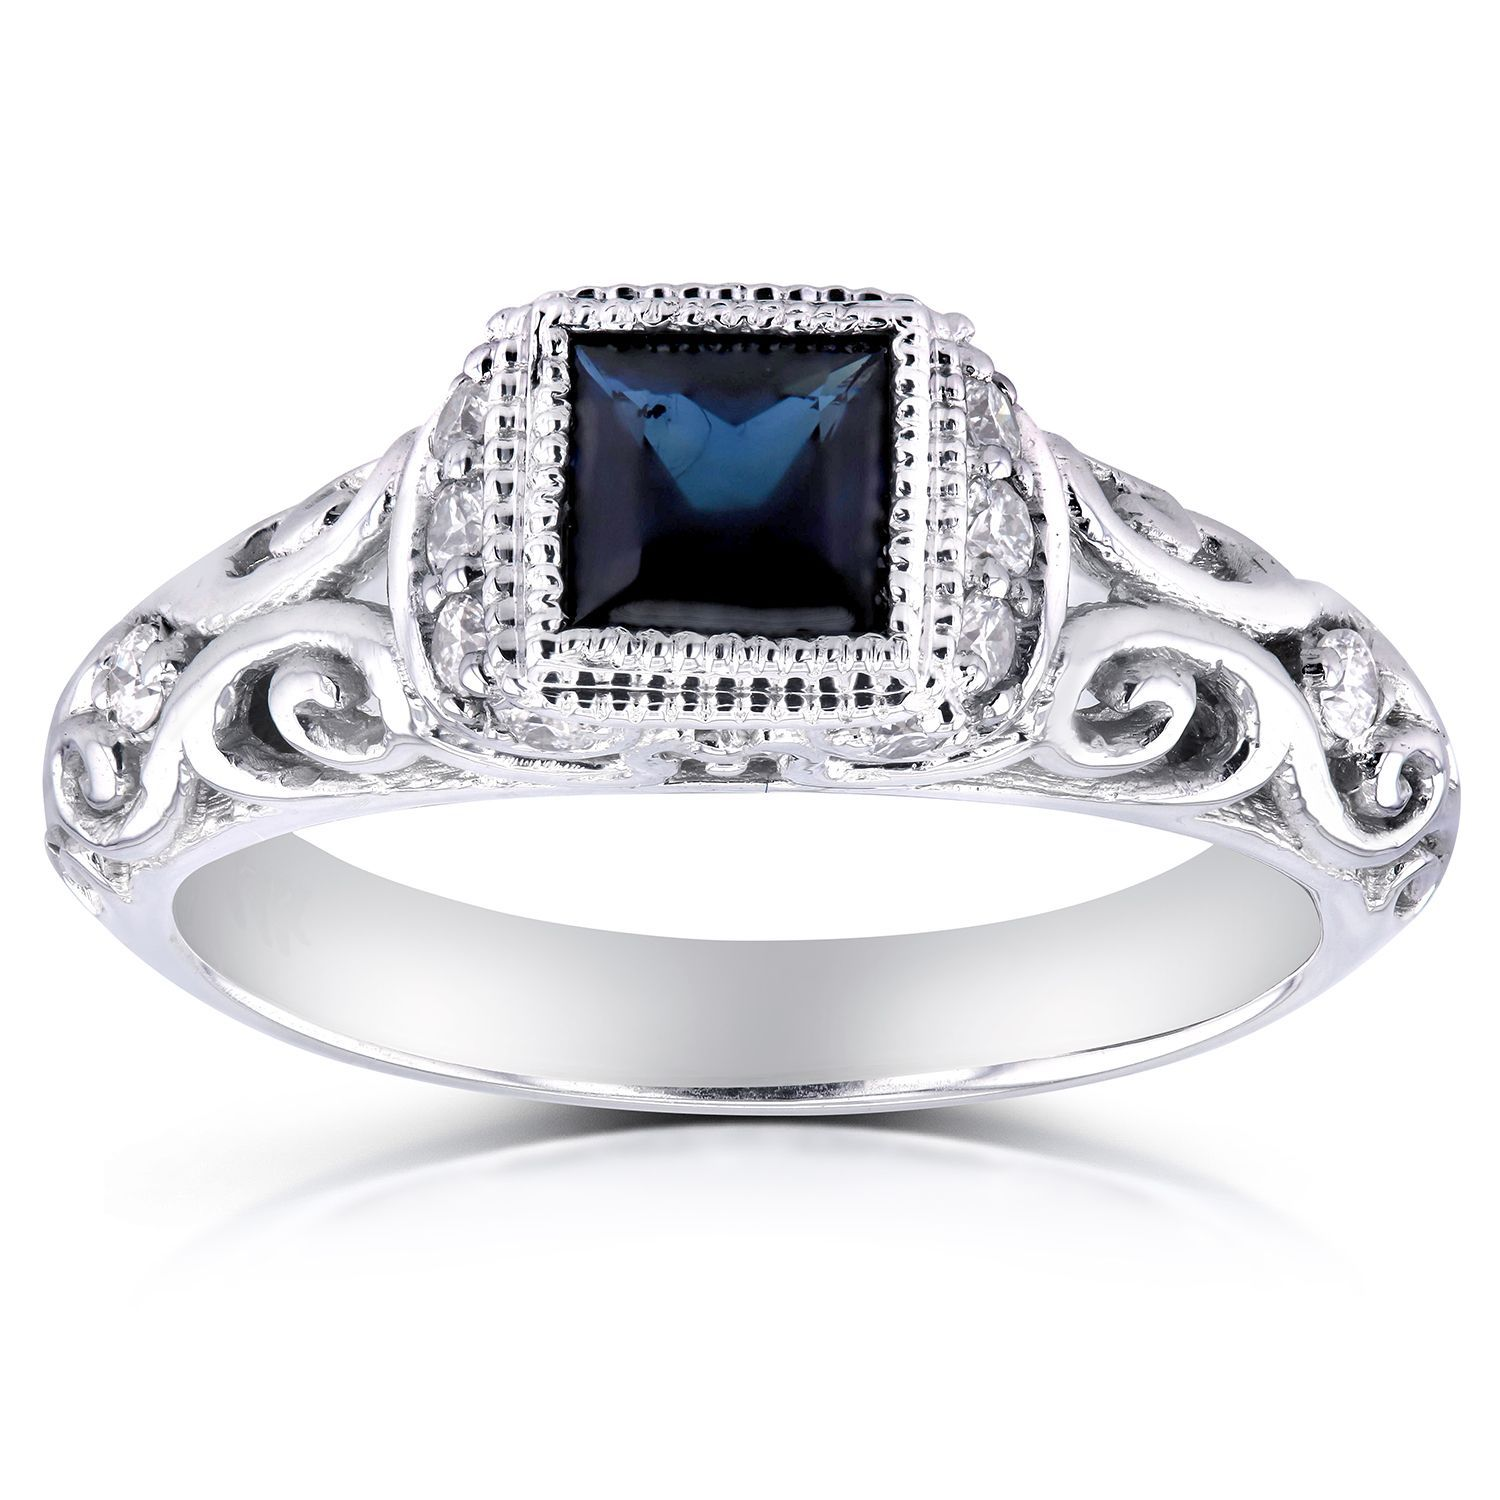 Sapphire and diamond antique style engagement ring in karat white